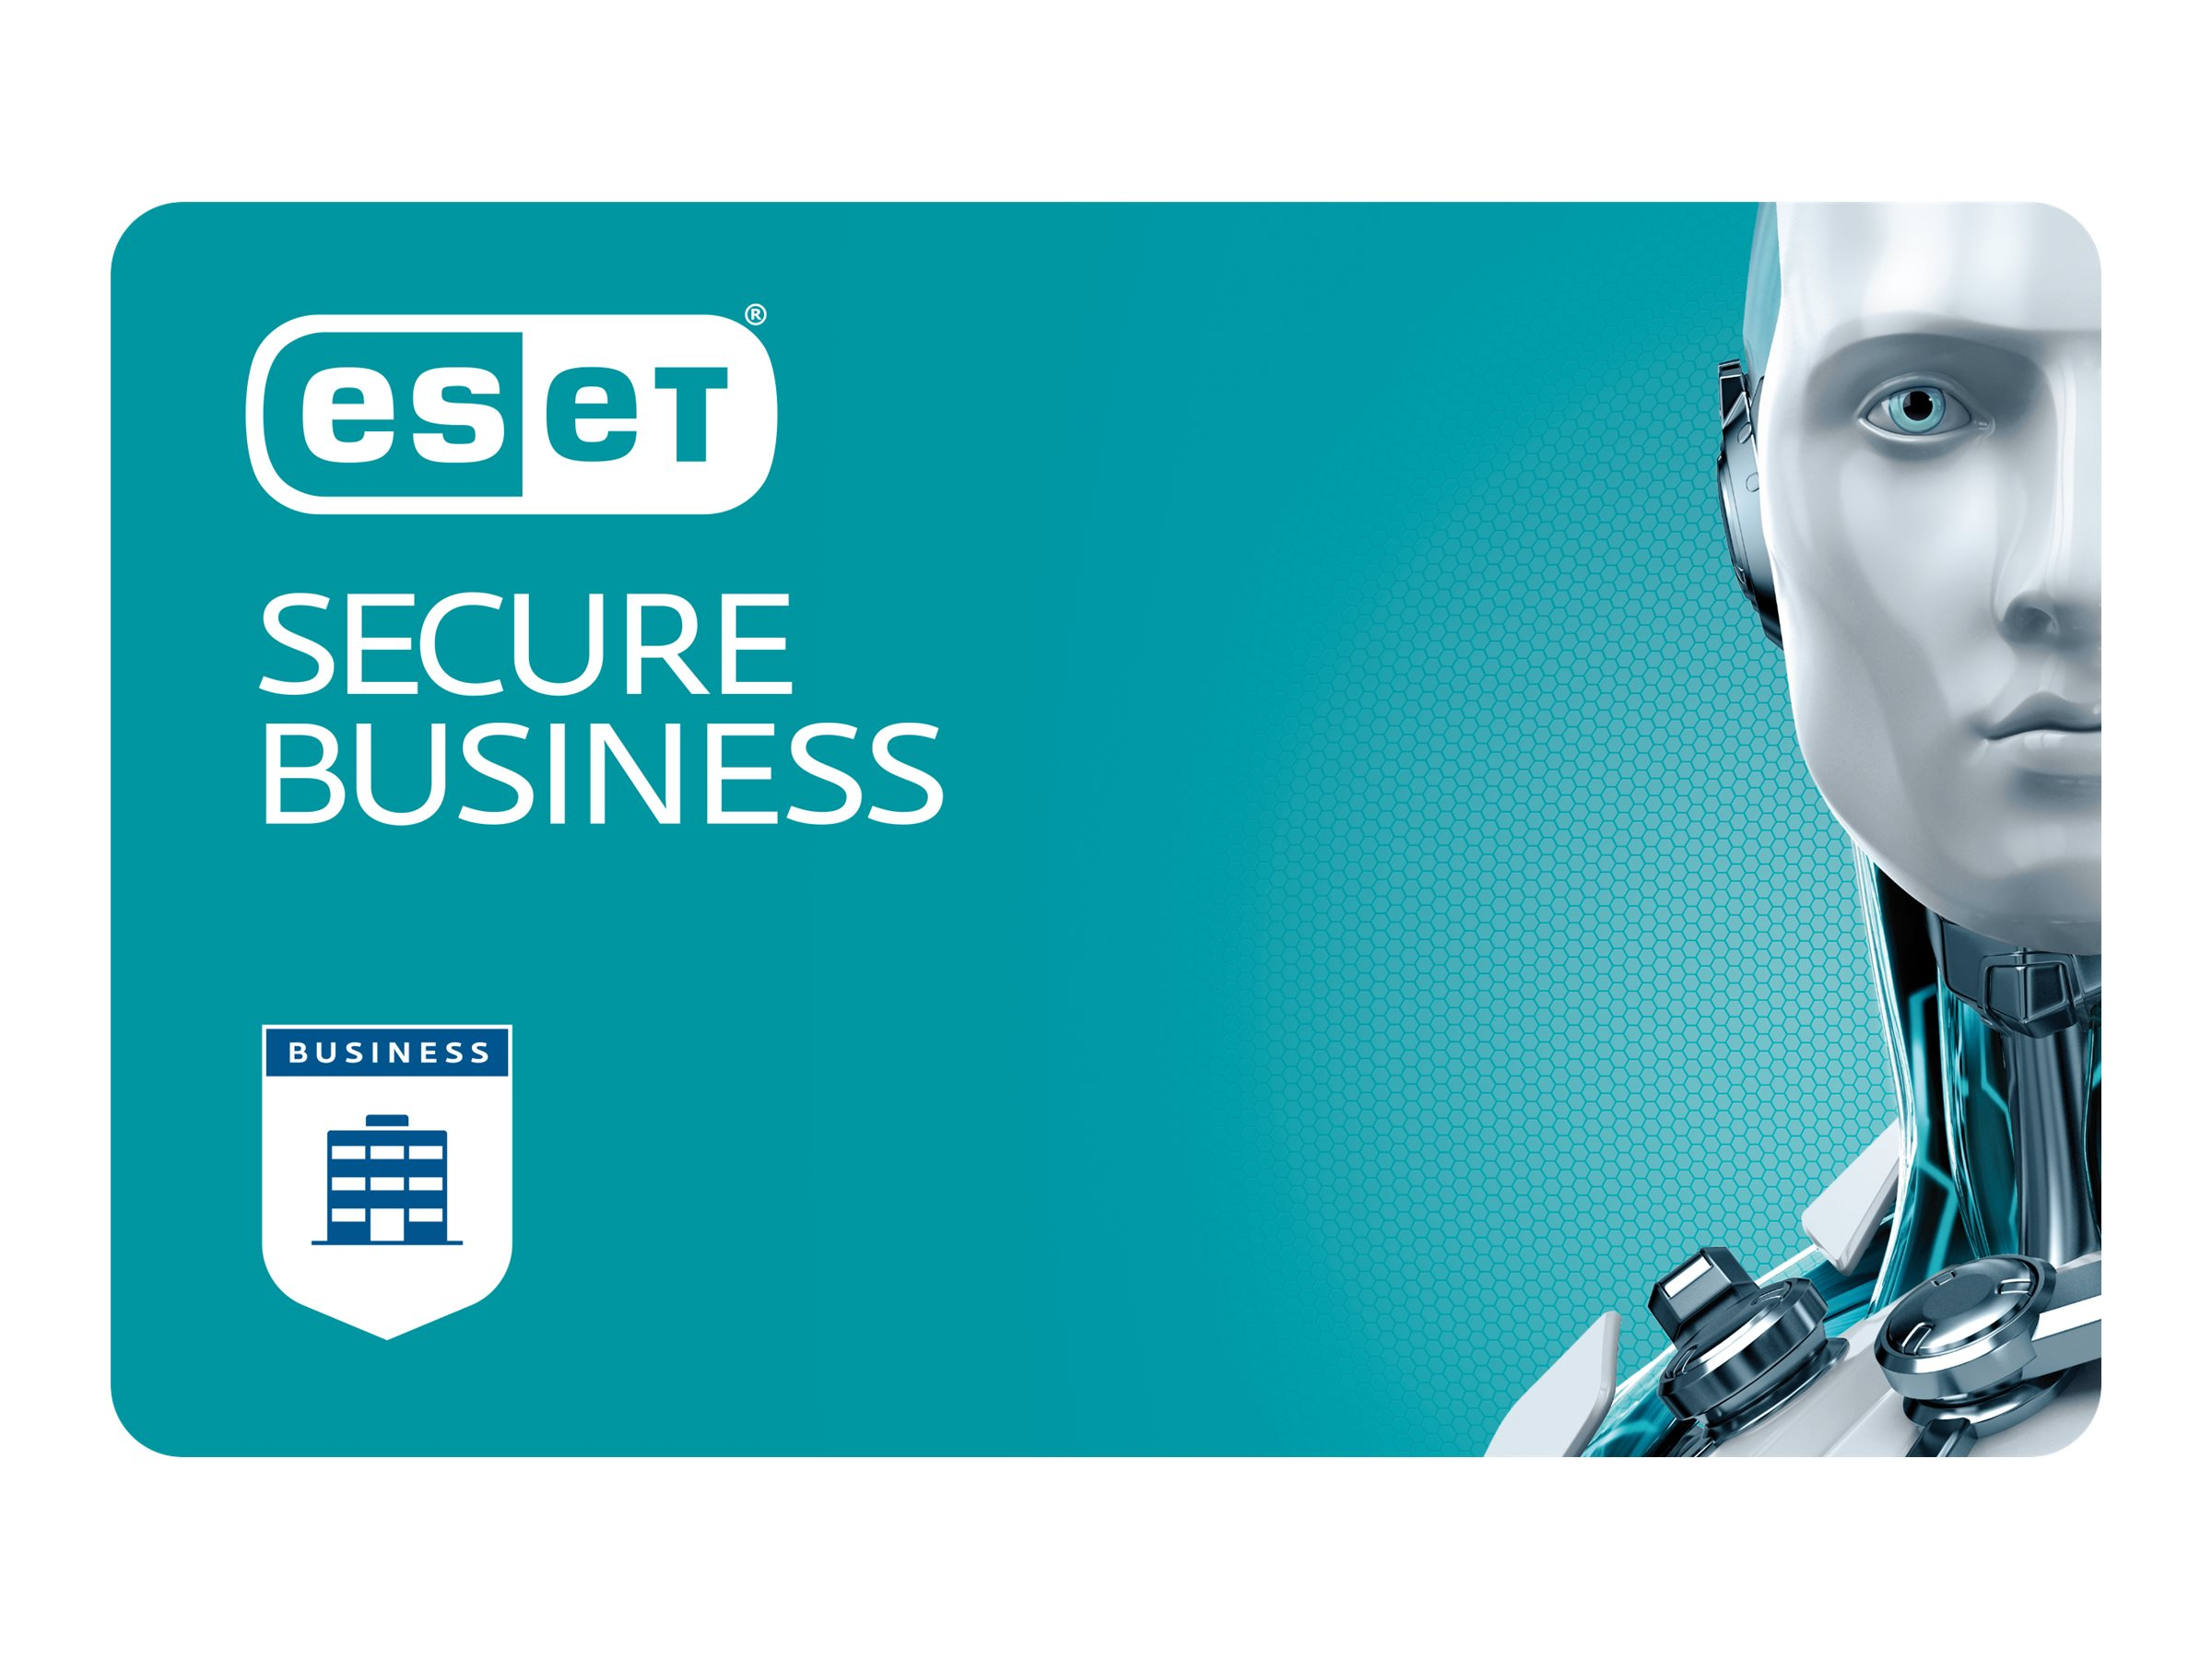 ESET Secure Business - Abonnement-Lizenz (3 Jahre) - 1 Platz - Volumen - 100-249 Lizenzen - Linux, Win, Mac, Android, iOS